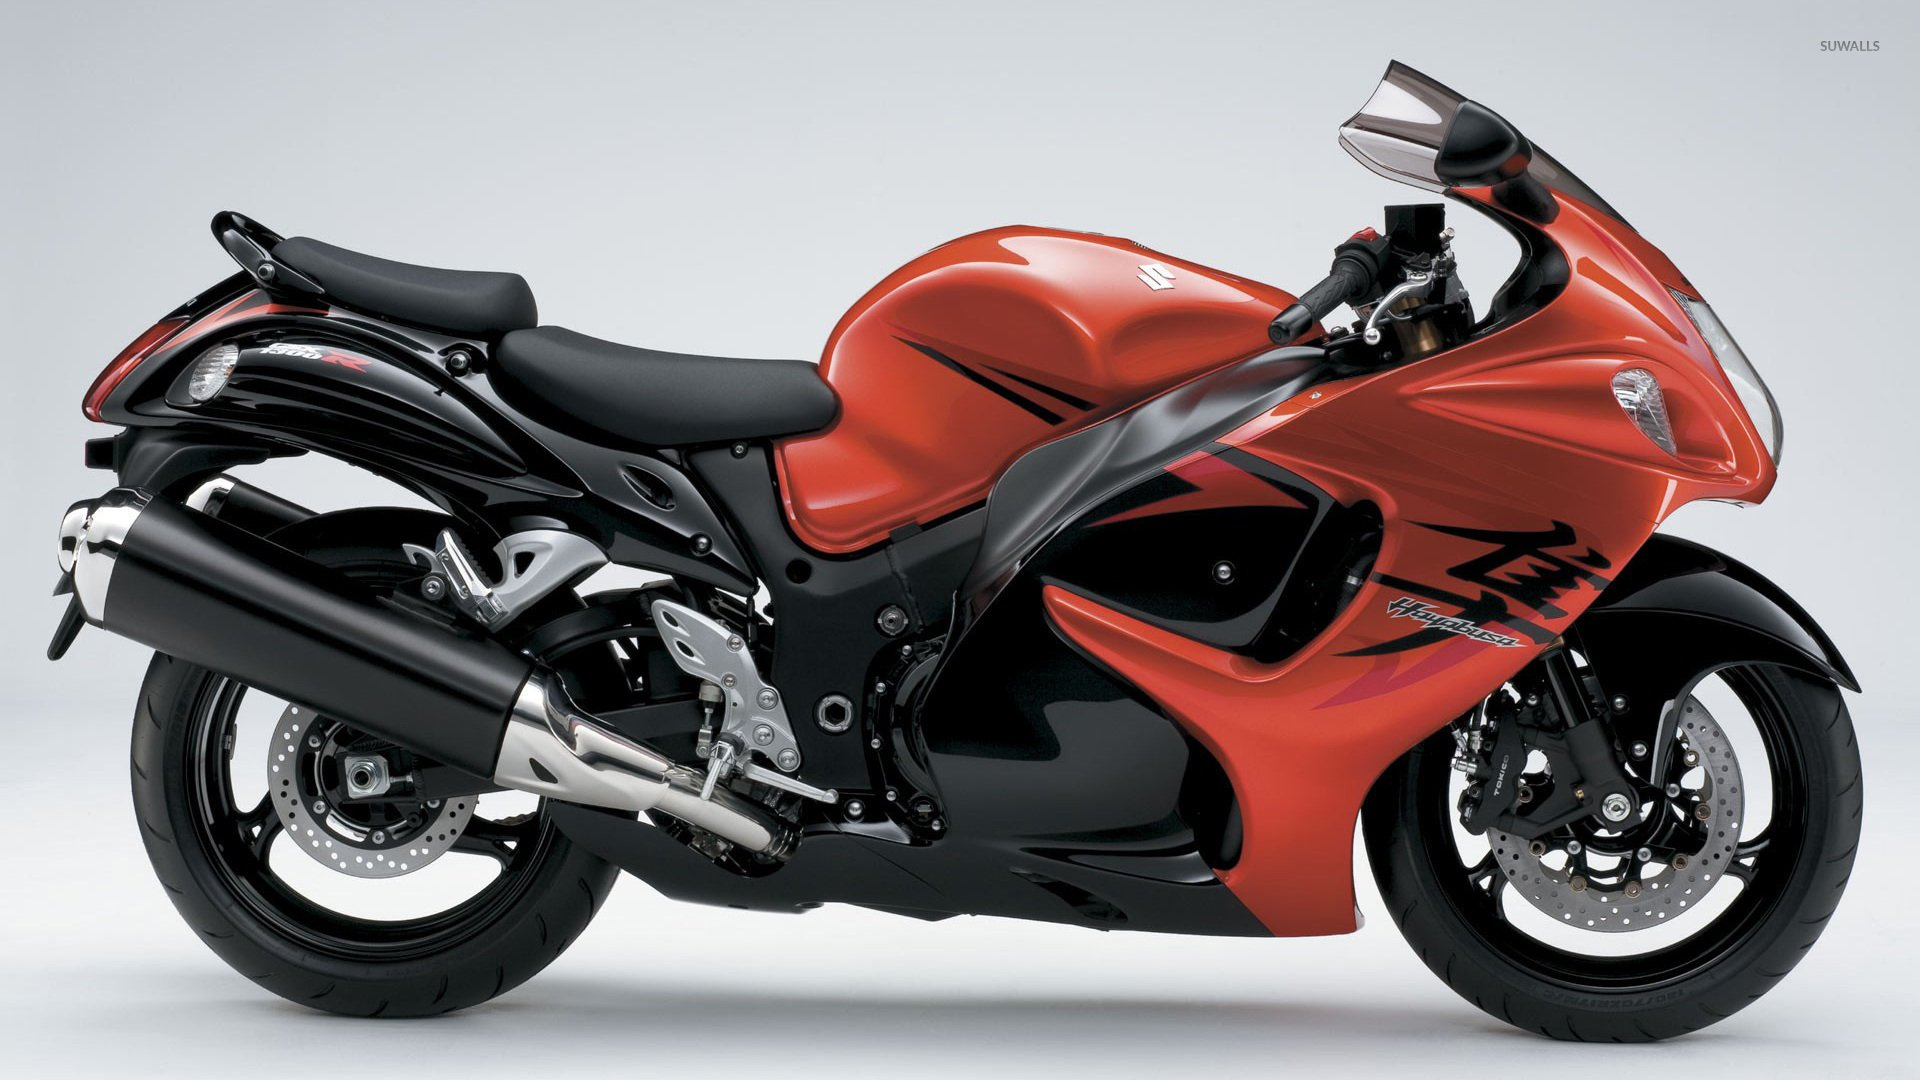 Suzuki Hayabusa wallpaper   Motorcycle wallpapers   5309 1920x1080